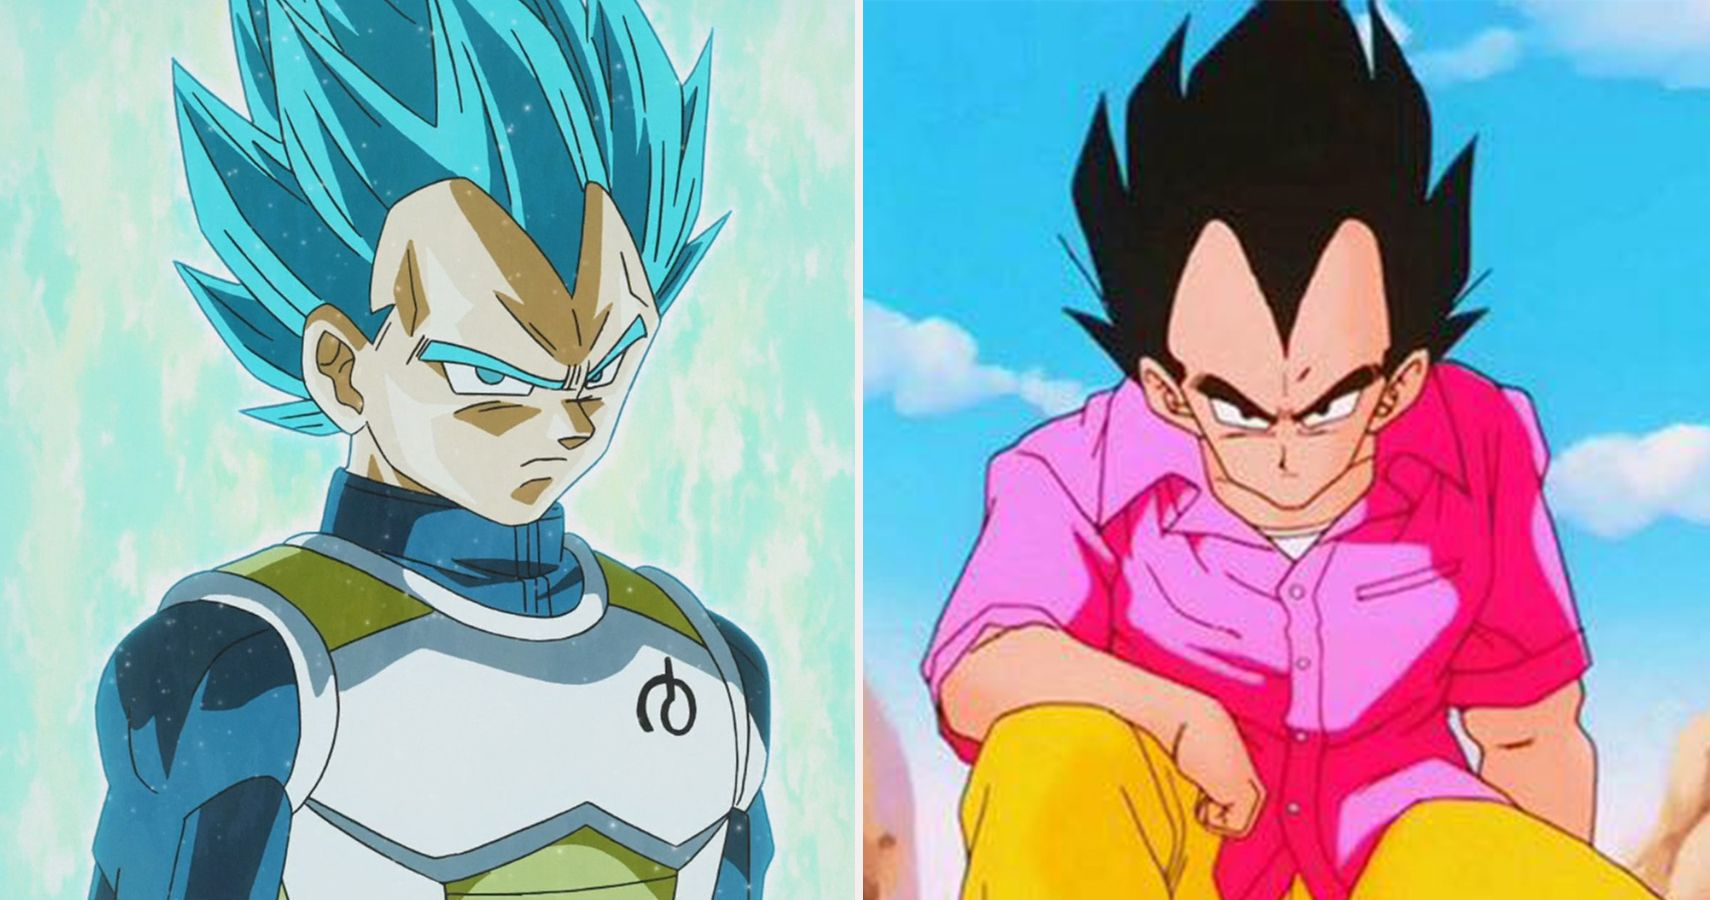 Dragon Ball Z Vegeta S Armors From Worst To Best Ranked Cbr The armour is damn awful. dragon ball z vegeta s armors from